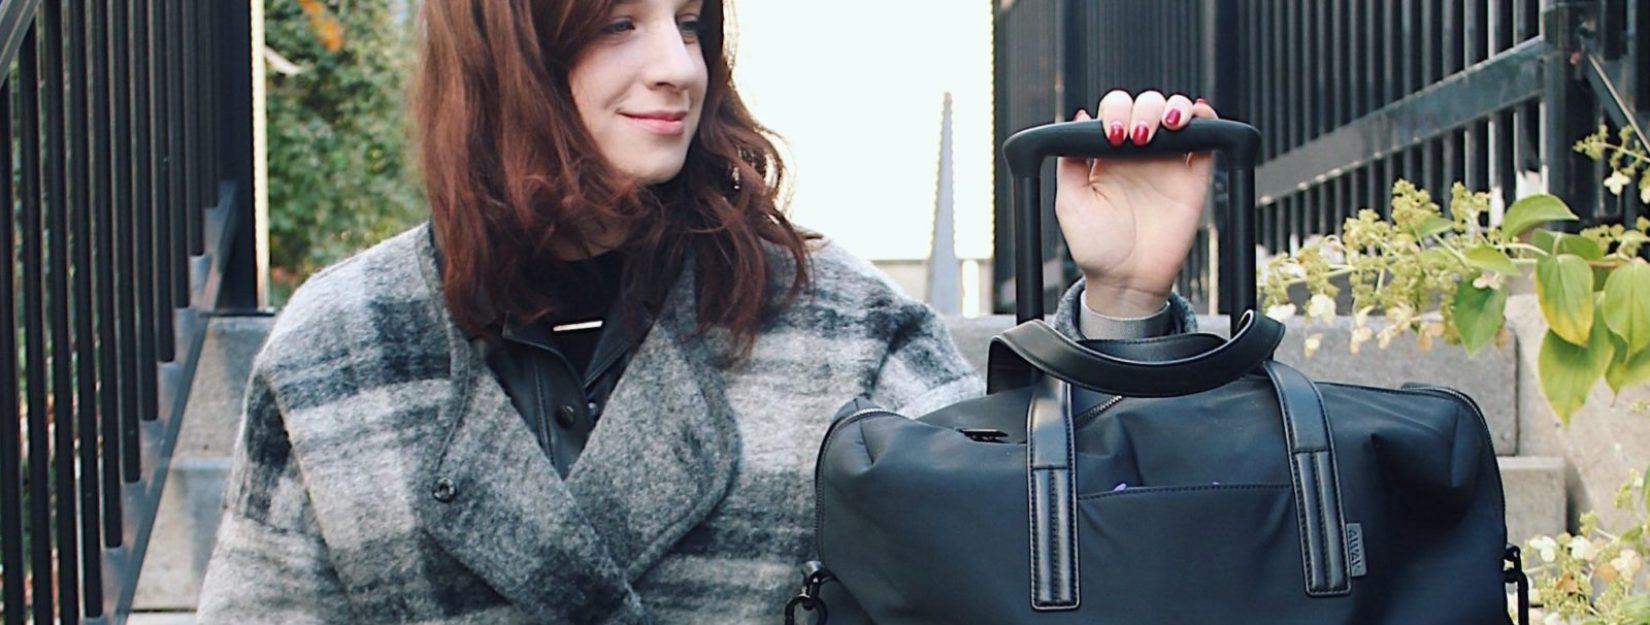 How to pack for business travel comfortably